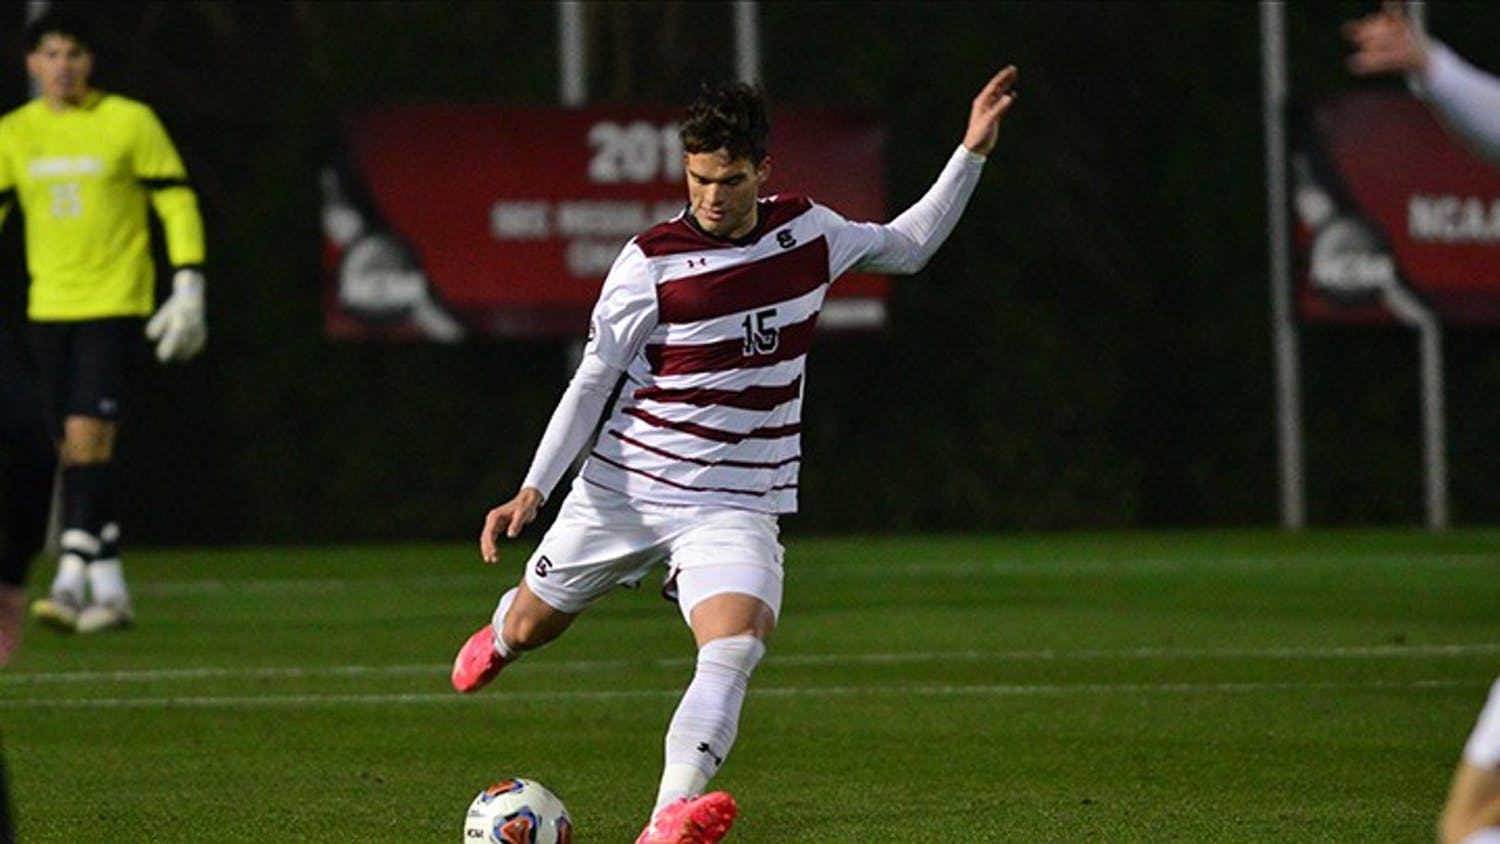 Sophomore defender Mike Roby kicks the ball during the Gamecocks' win over USC Upstate Wednesday. South Carolina won 2-1 in overtime.